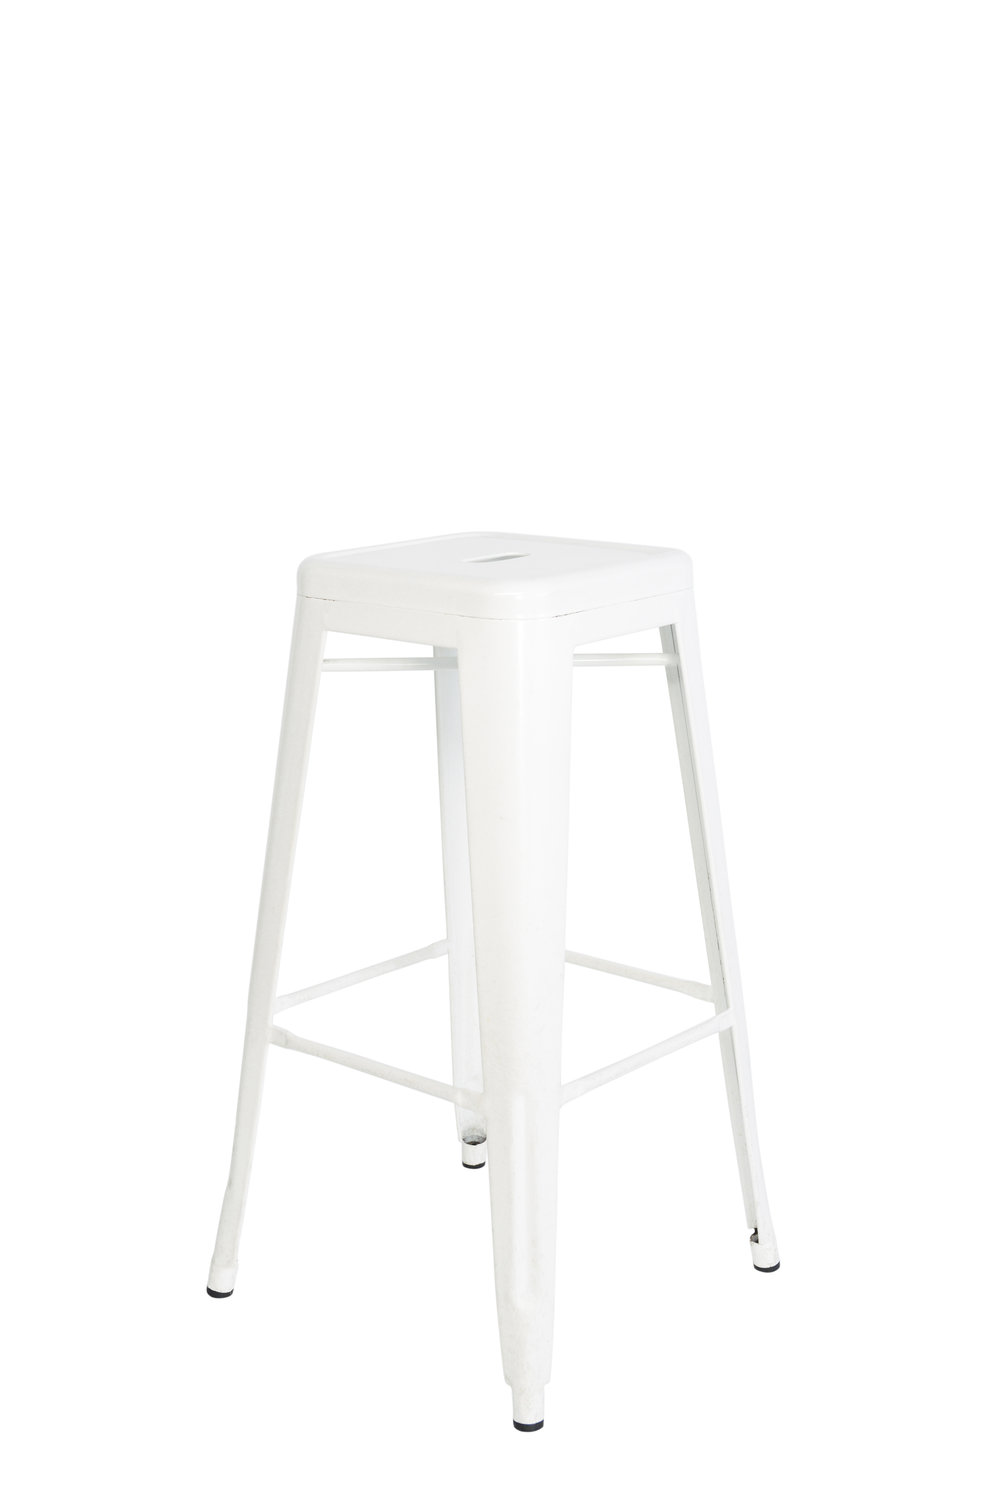 White metal stools qty. 8